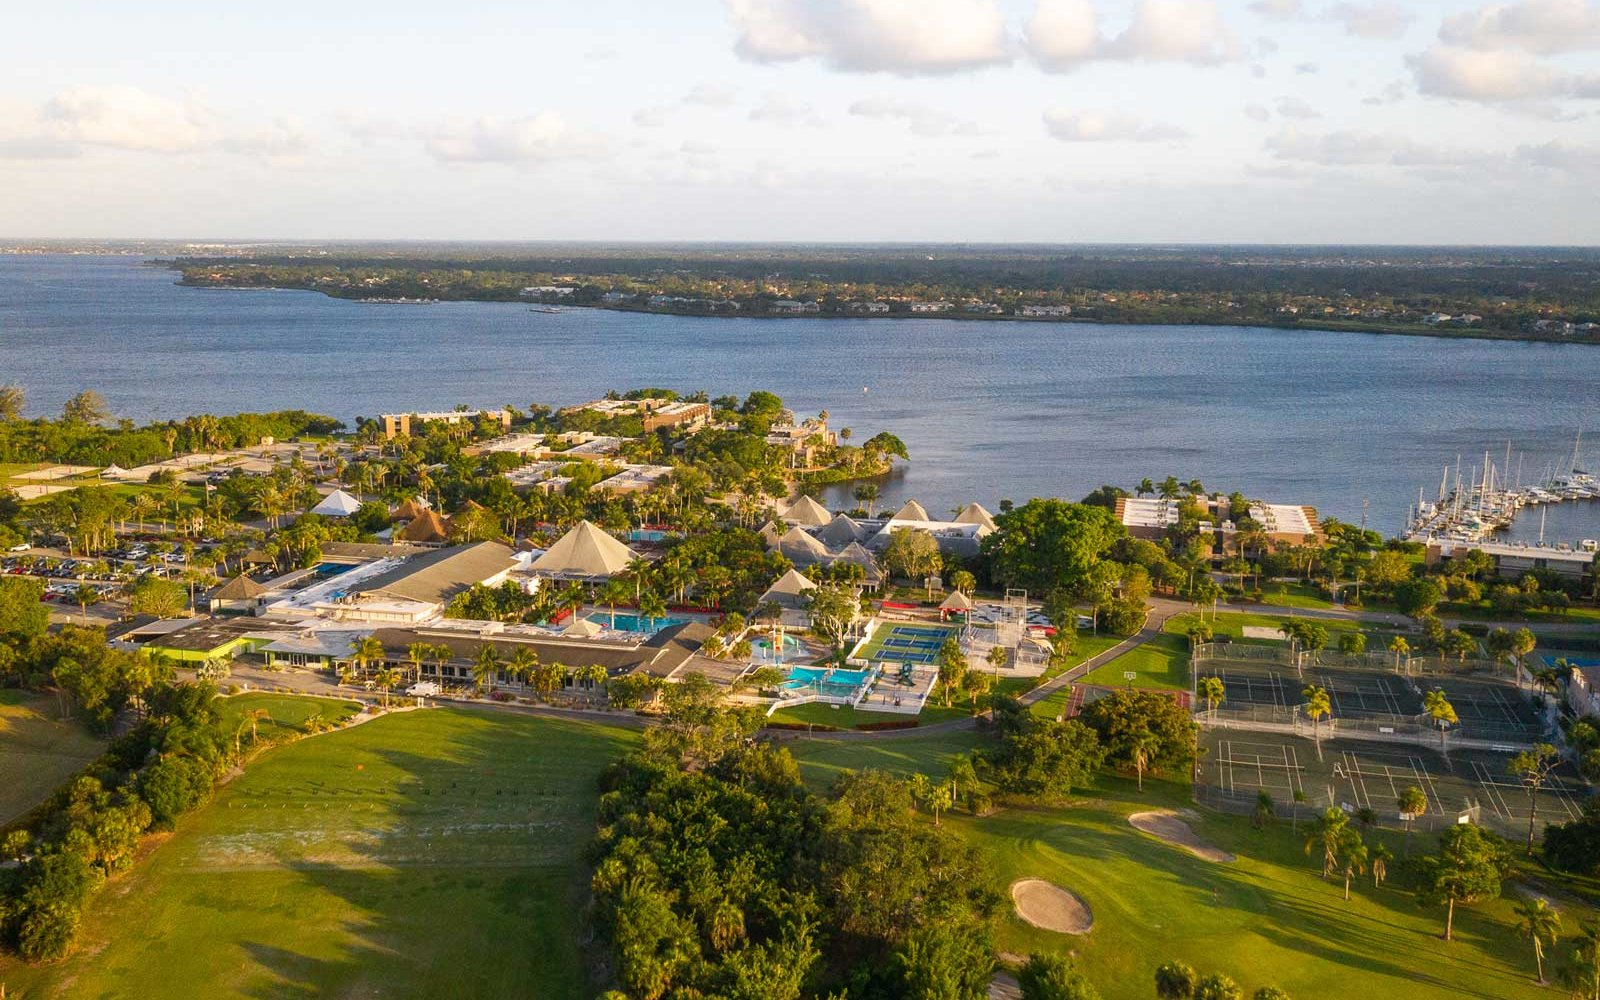 St. Lucie River, Club Med Sandpiper Bay